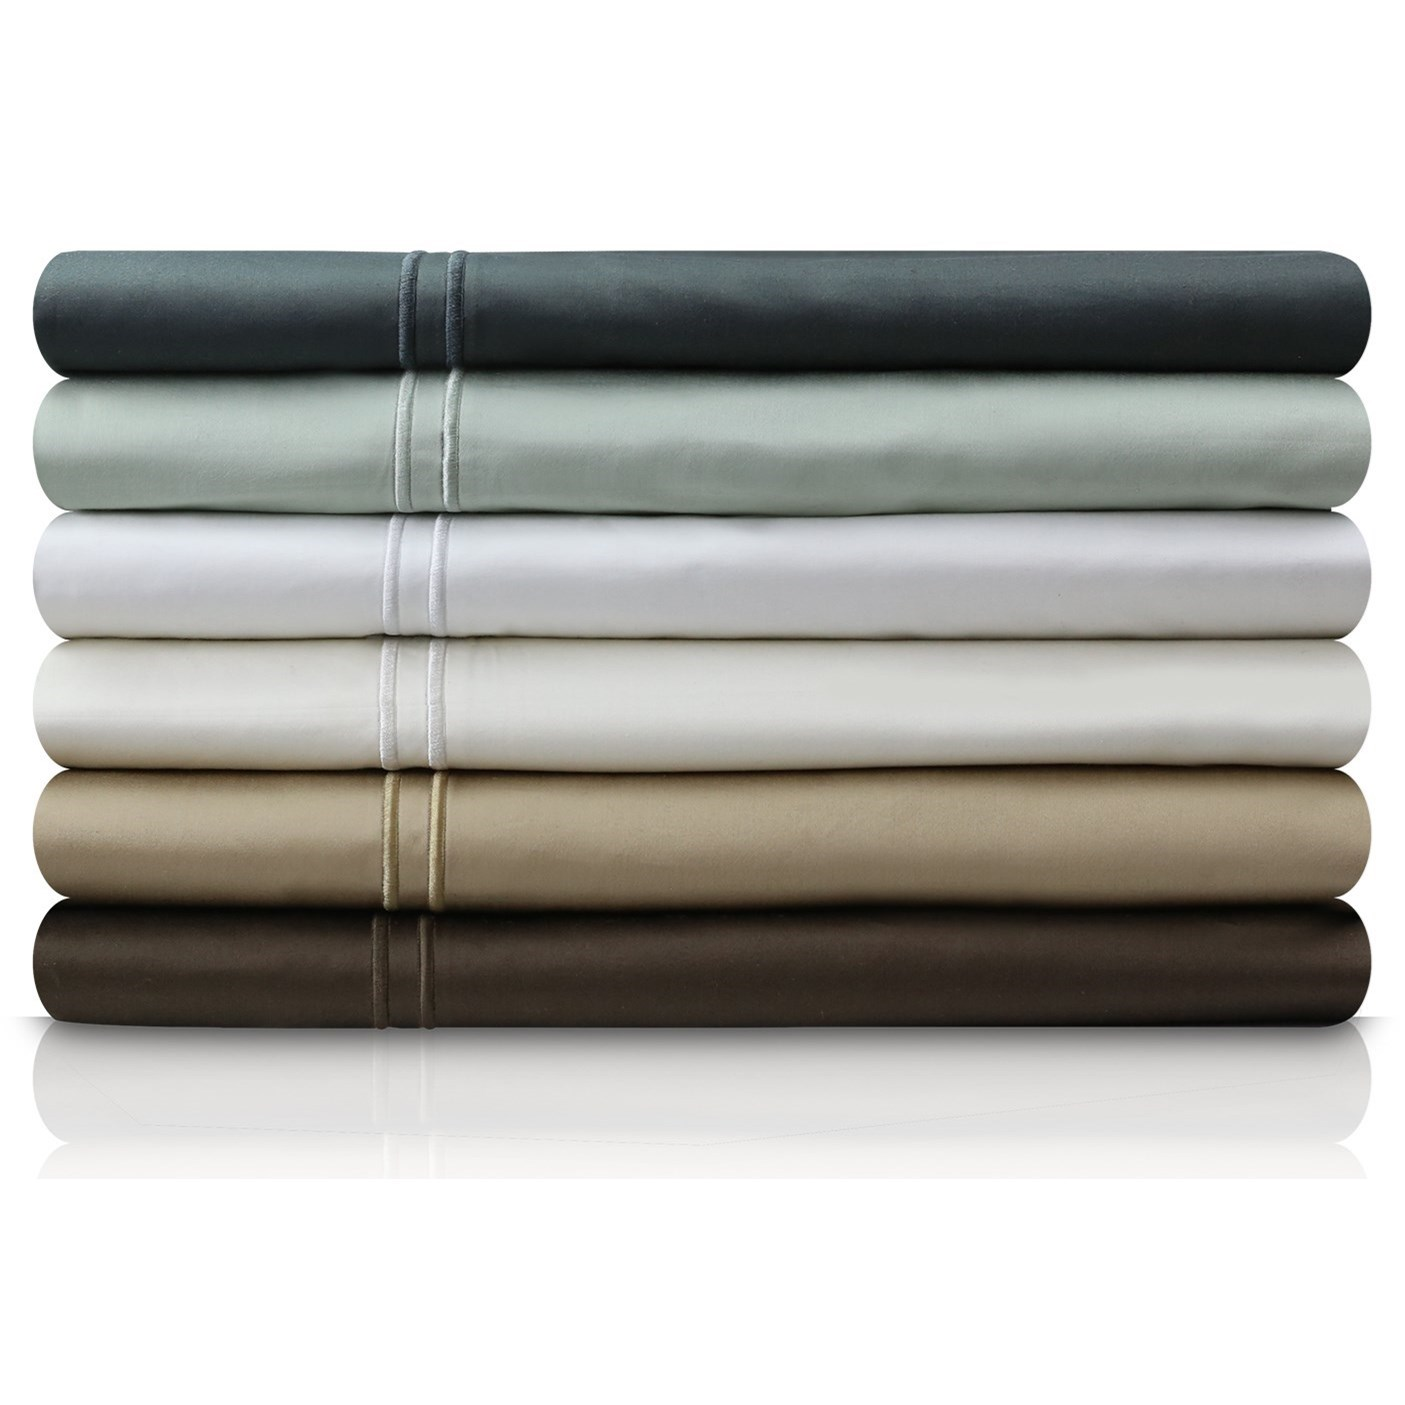 Malouf Egyptian Cotton King 600 TC Egyptian Cotton Pillowcases  - Item Number: MA06KKSIPC